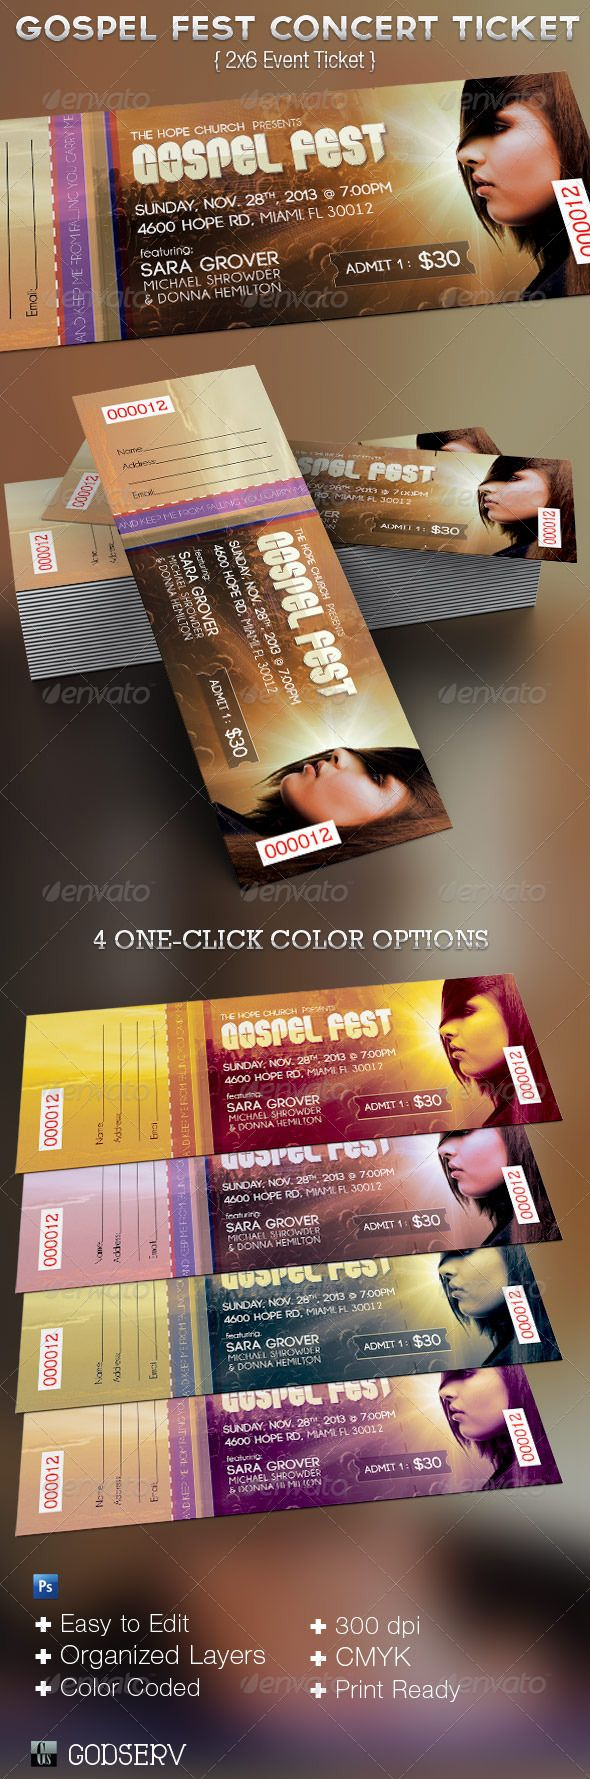 Concert Ticket Template Free Download Beauteous 14 Best Layoutstext And Images Images On Pinterest  Brochures .